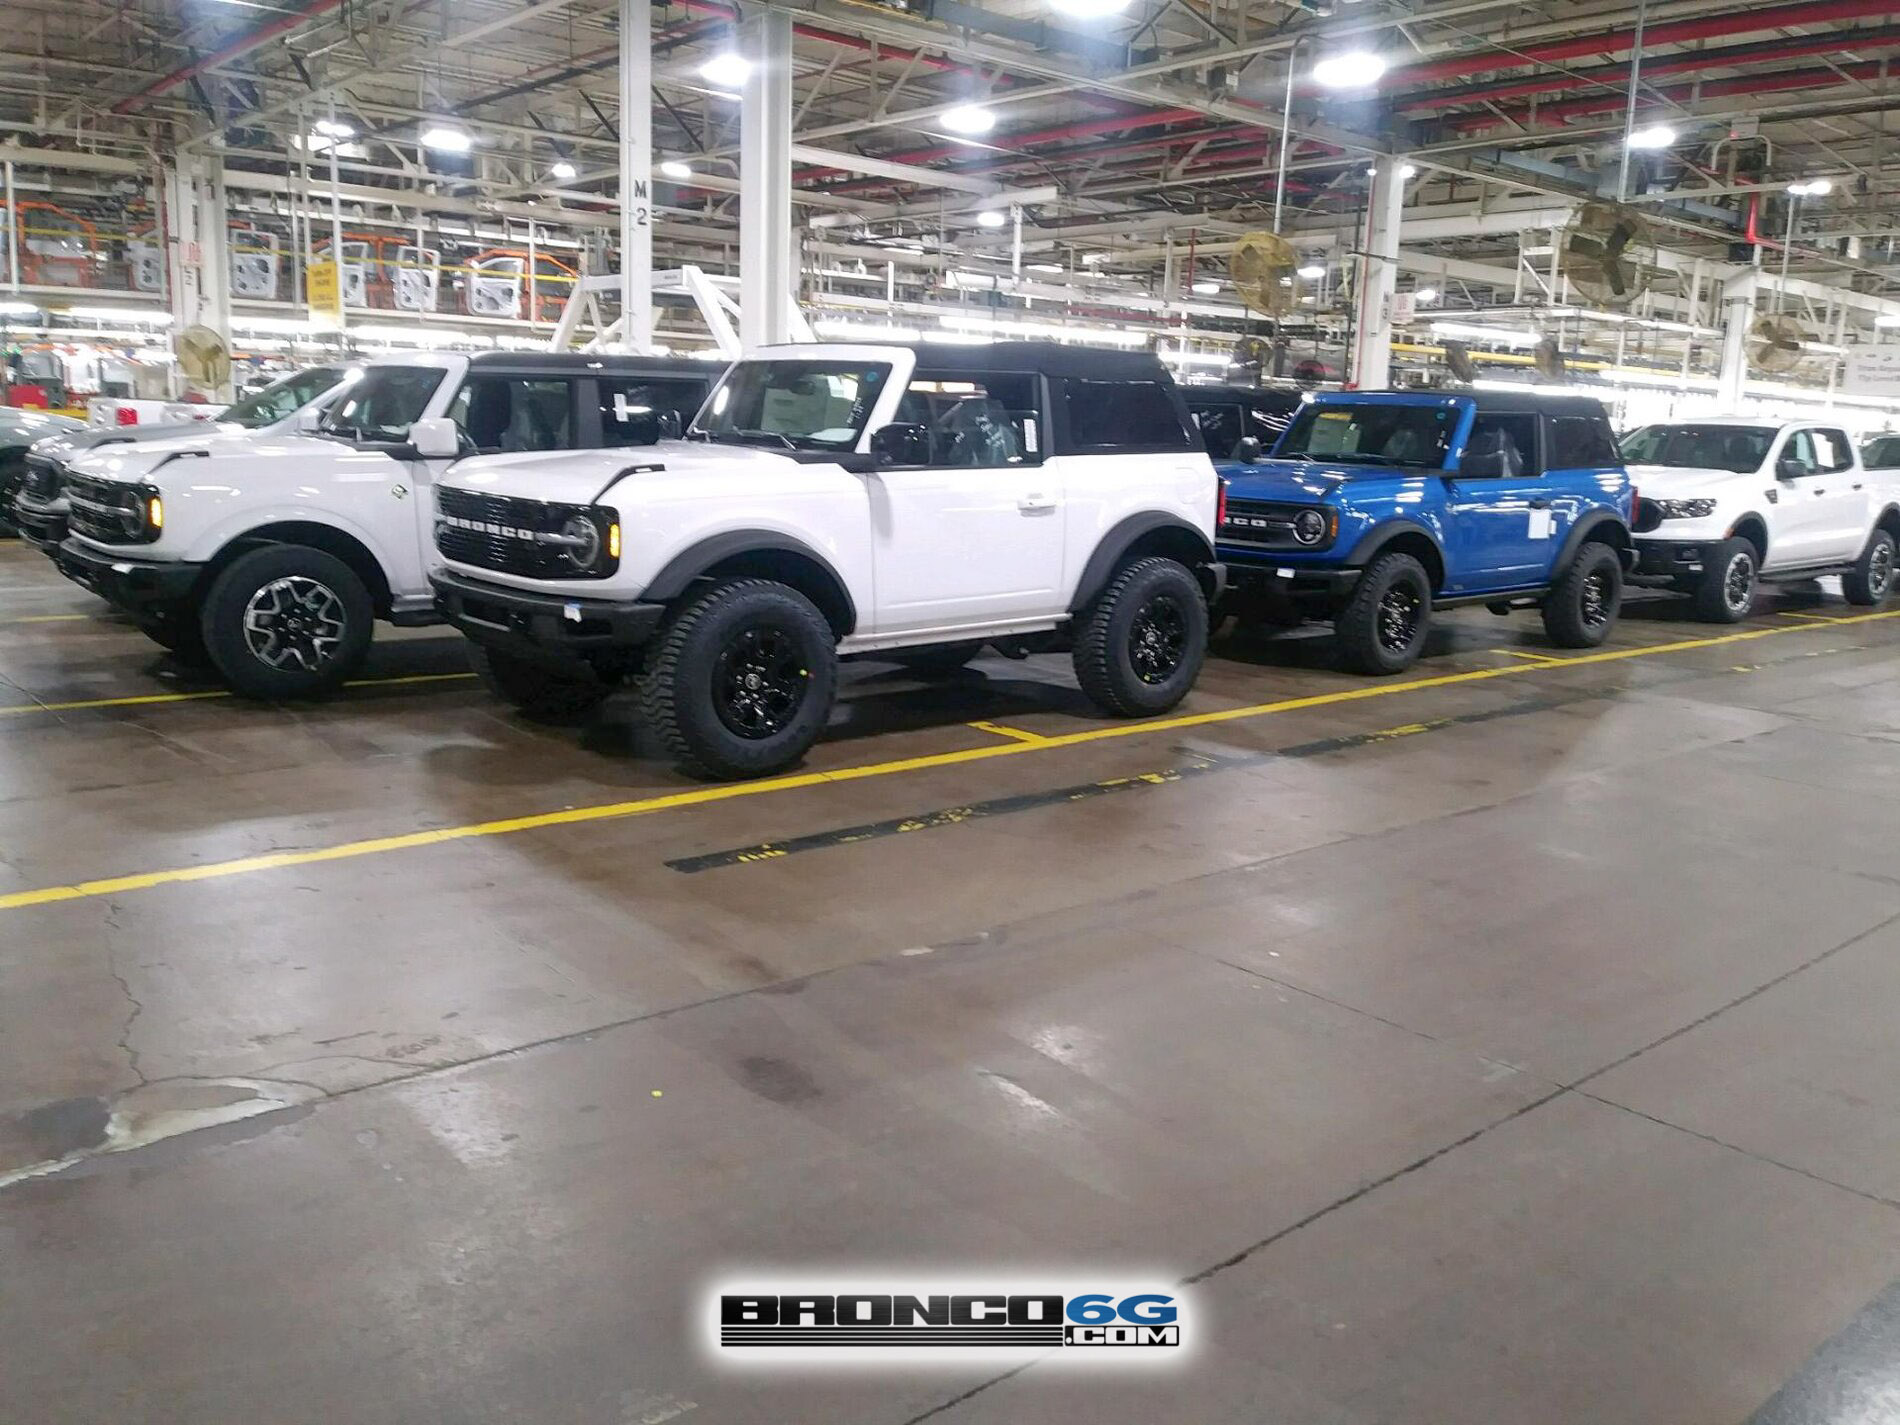 Fastop Fastback Top 2021 Bronco factory MAP aseembly.jpg